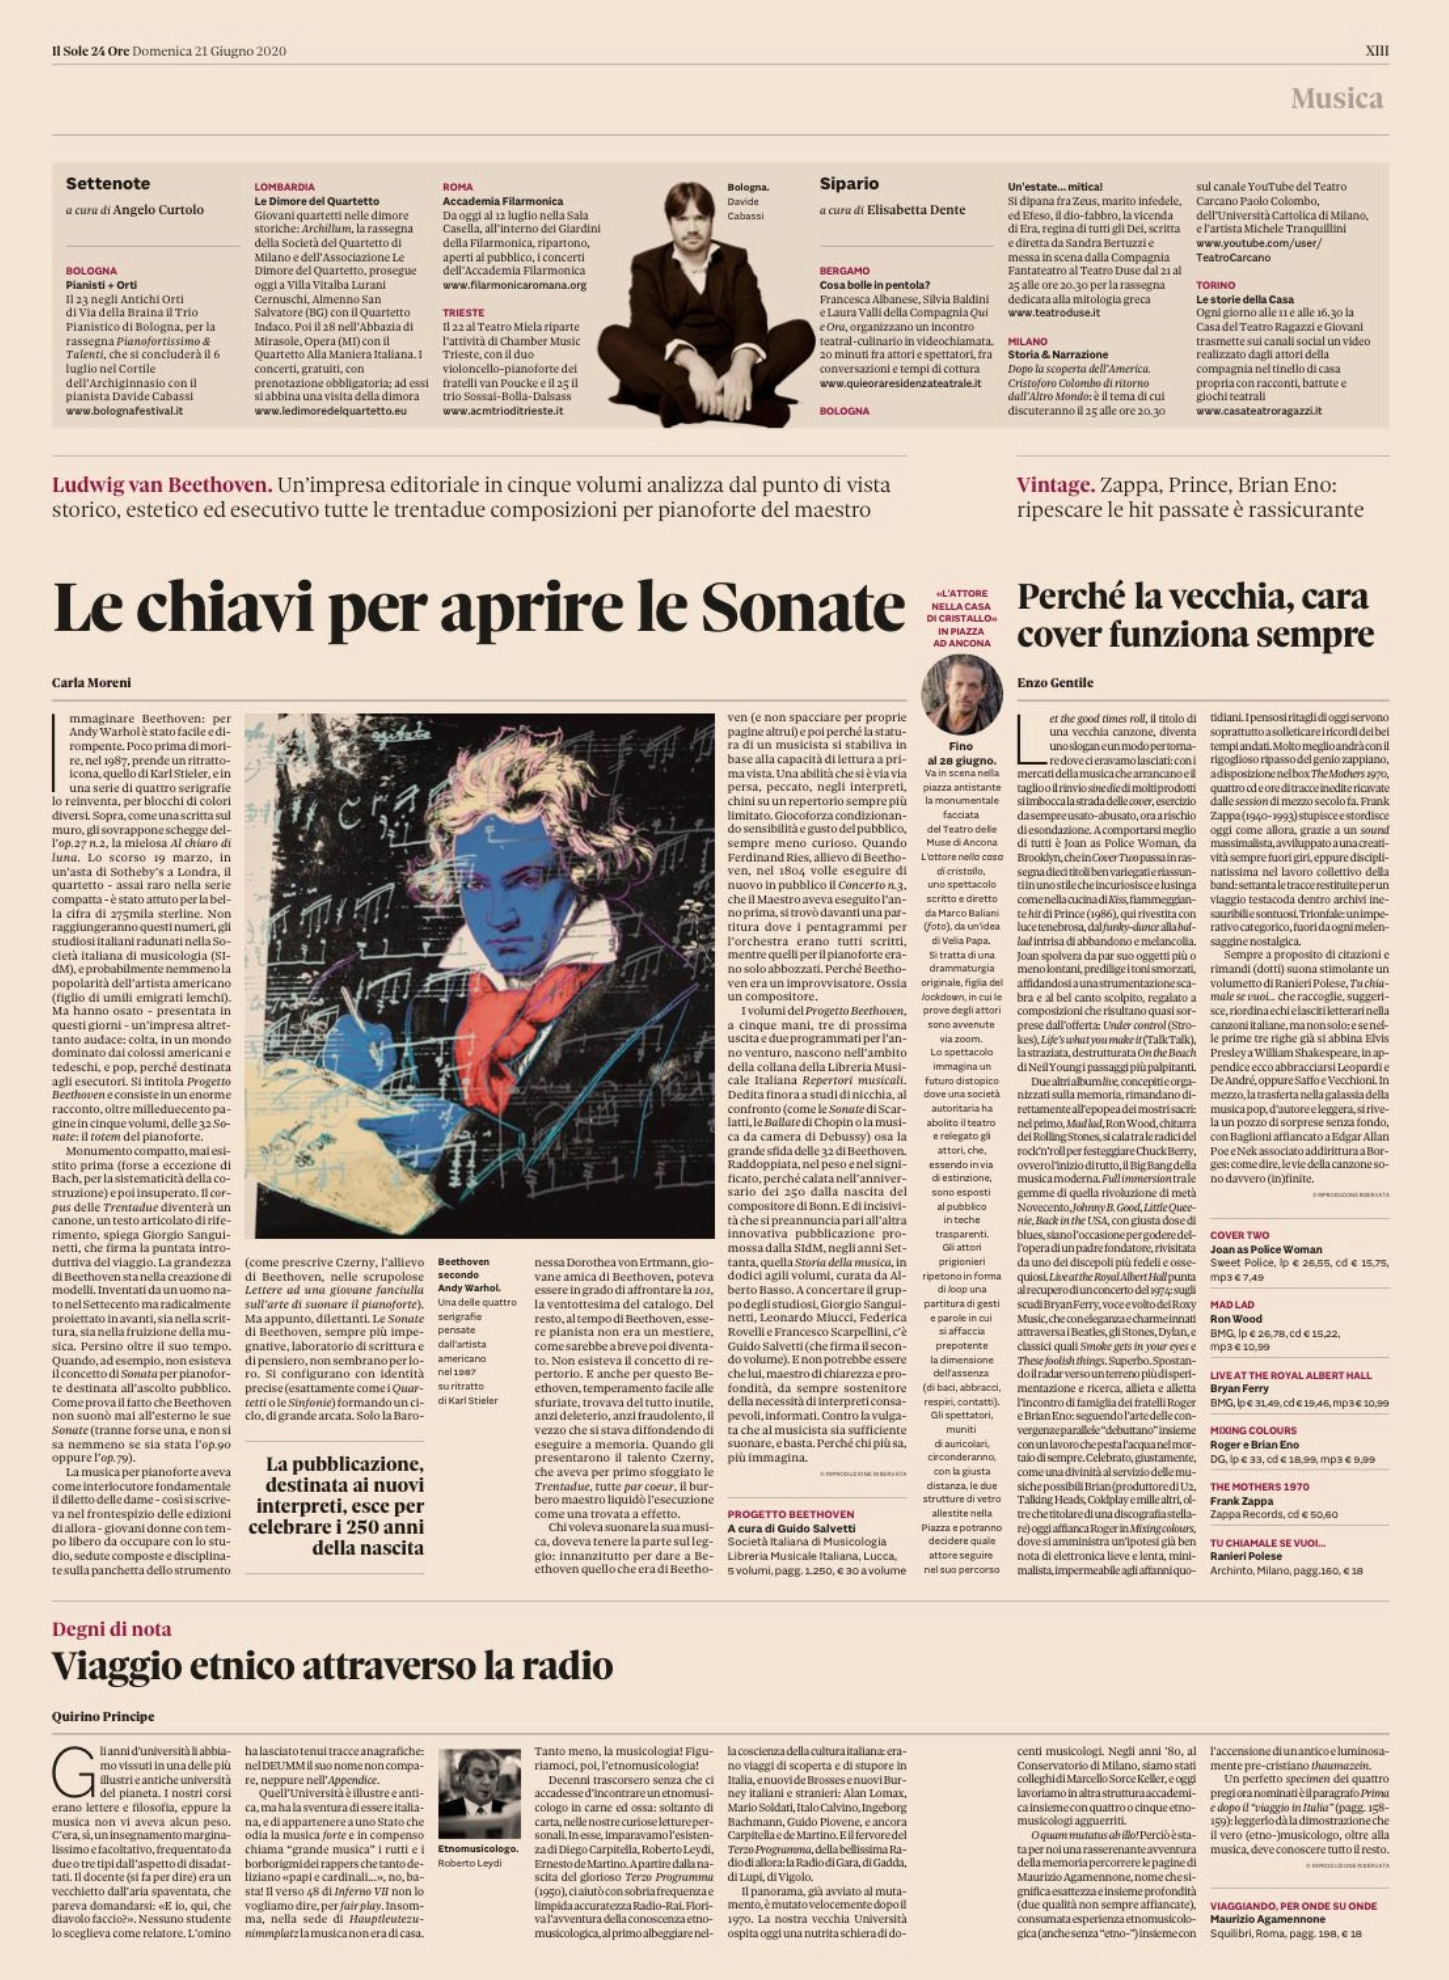 Beethoven Project featured on Sole 24 Ore